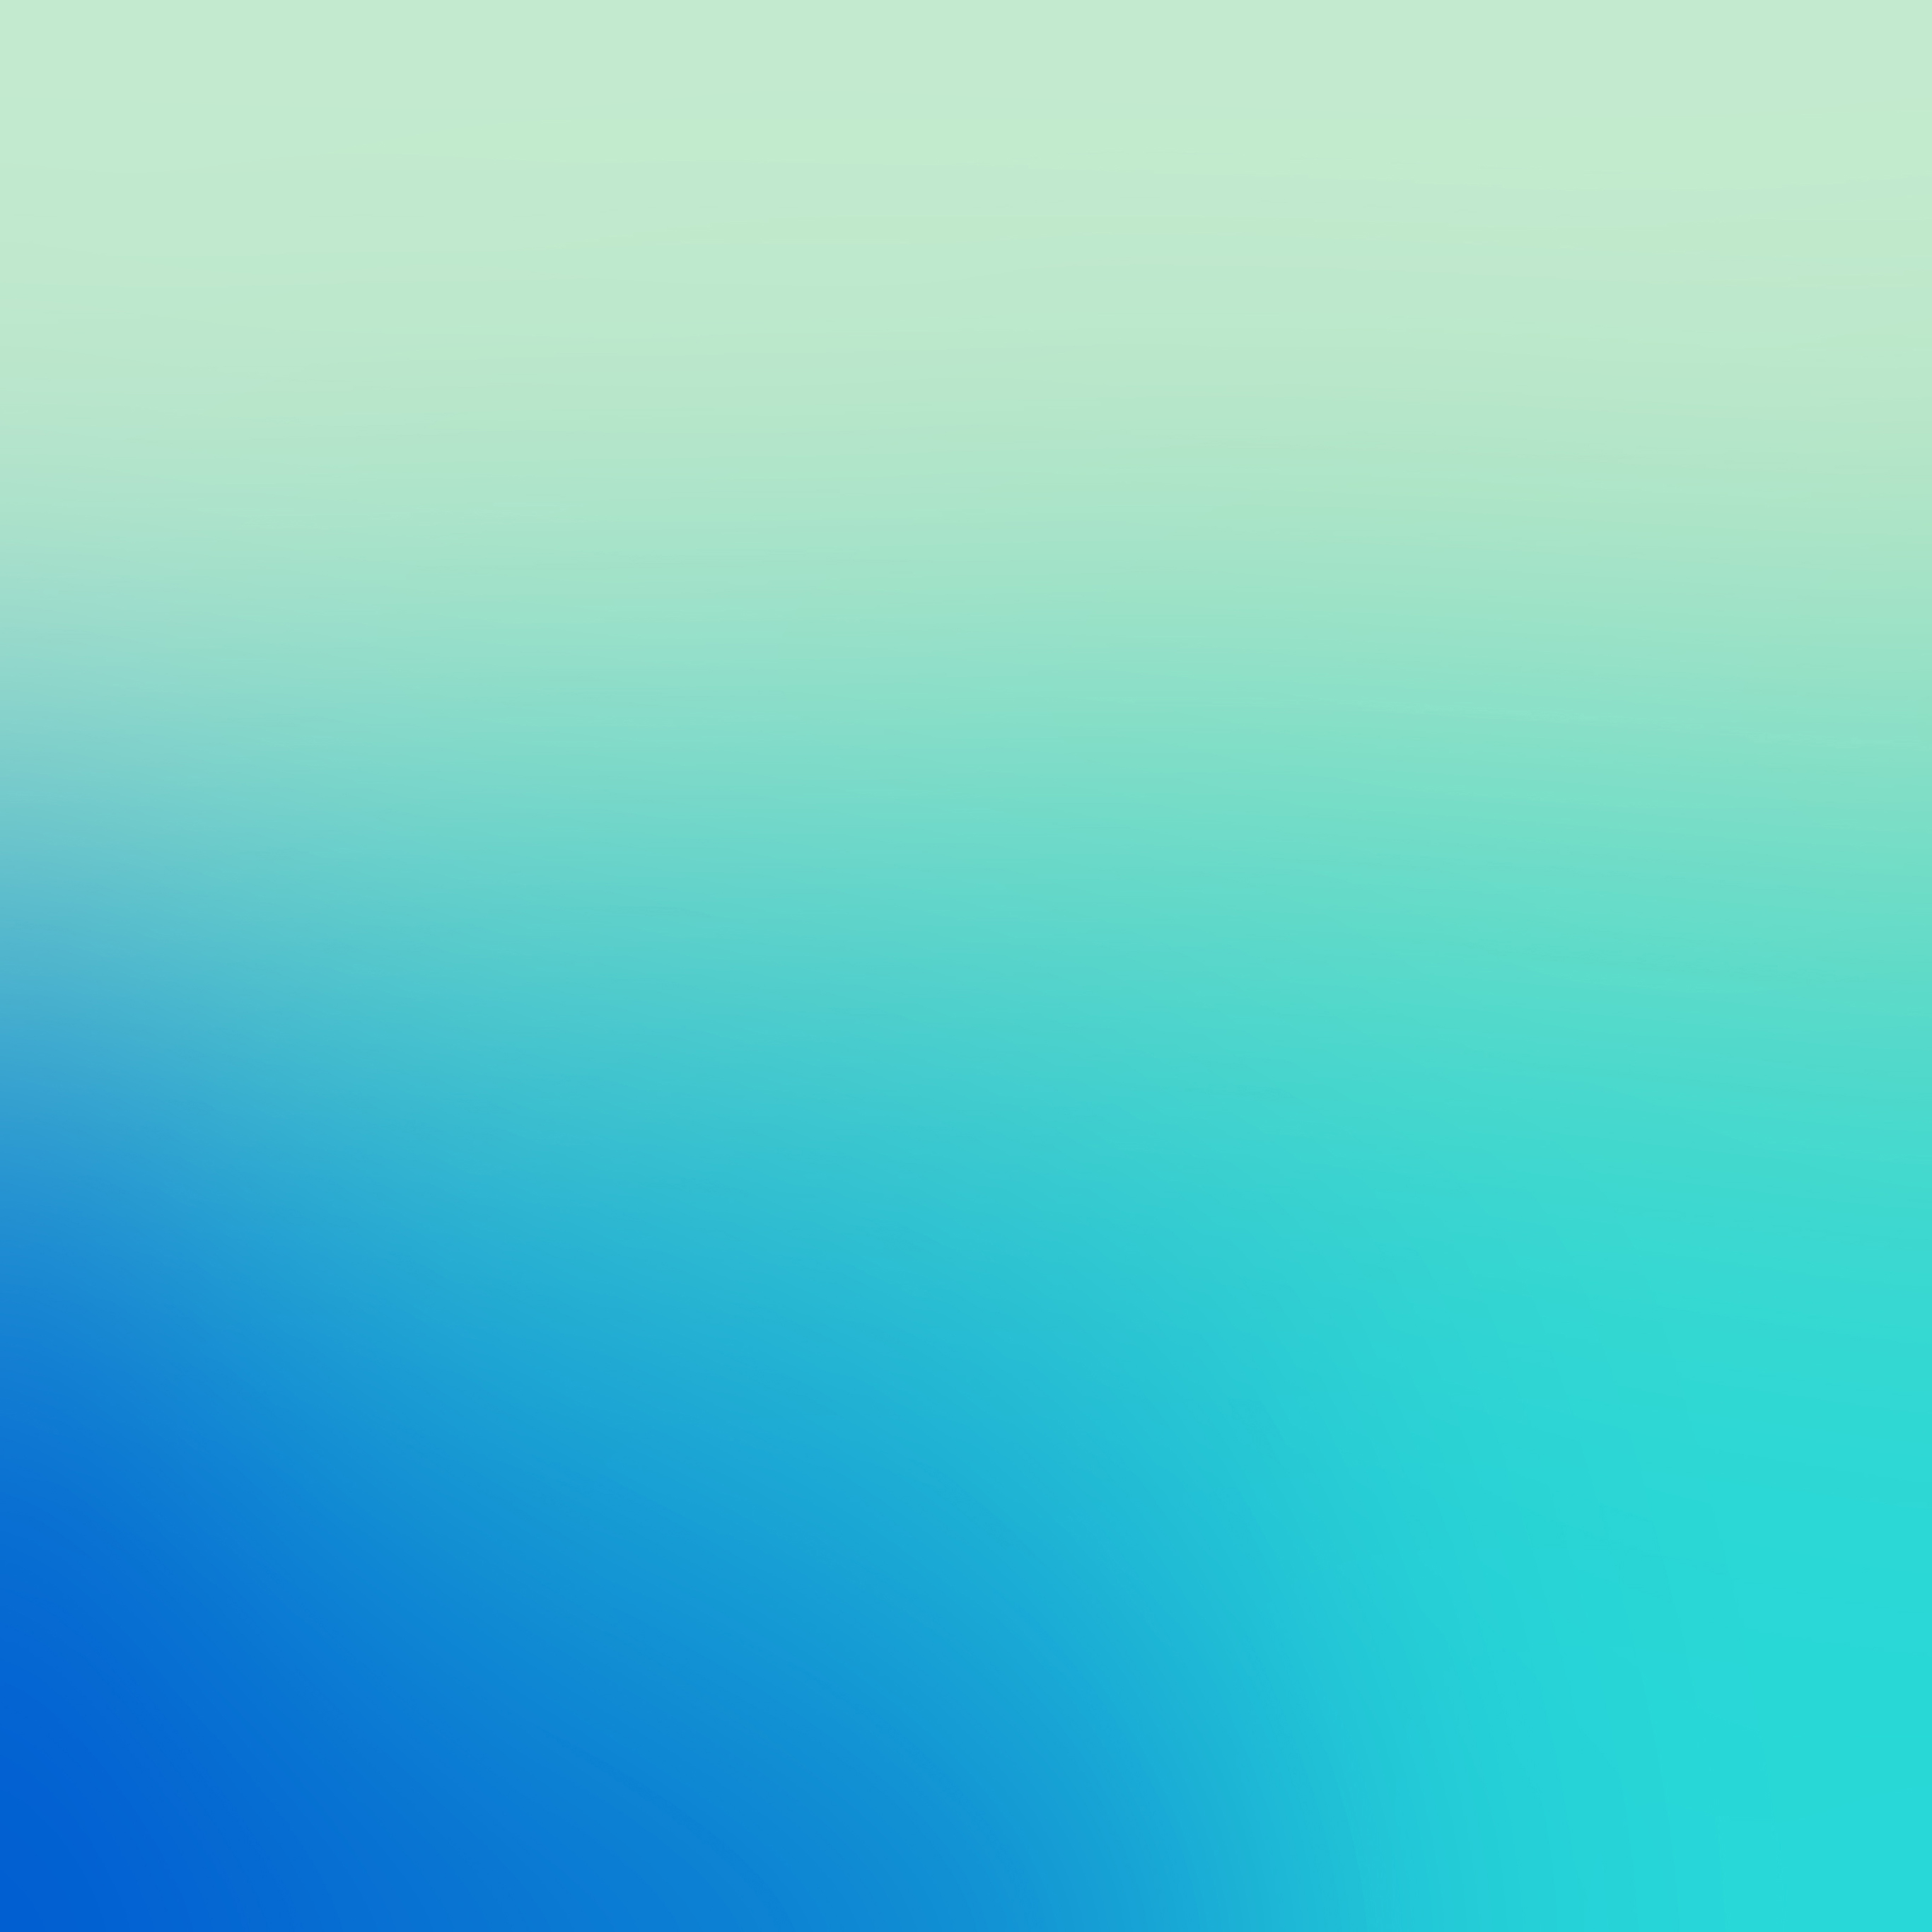 Sb21 Wallpaper Gradient Blue Candy Blur Papers Co